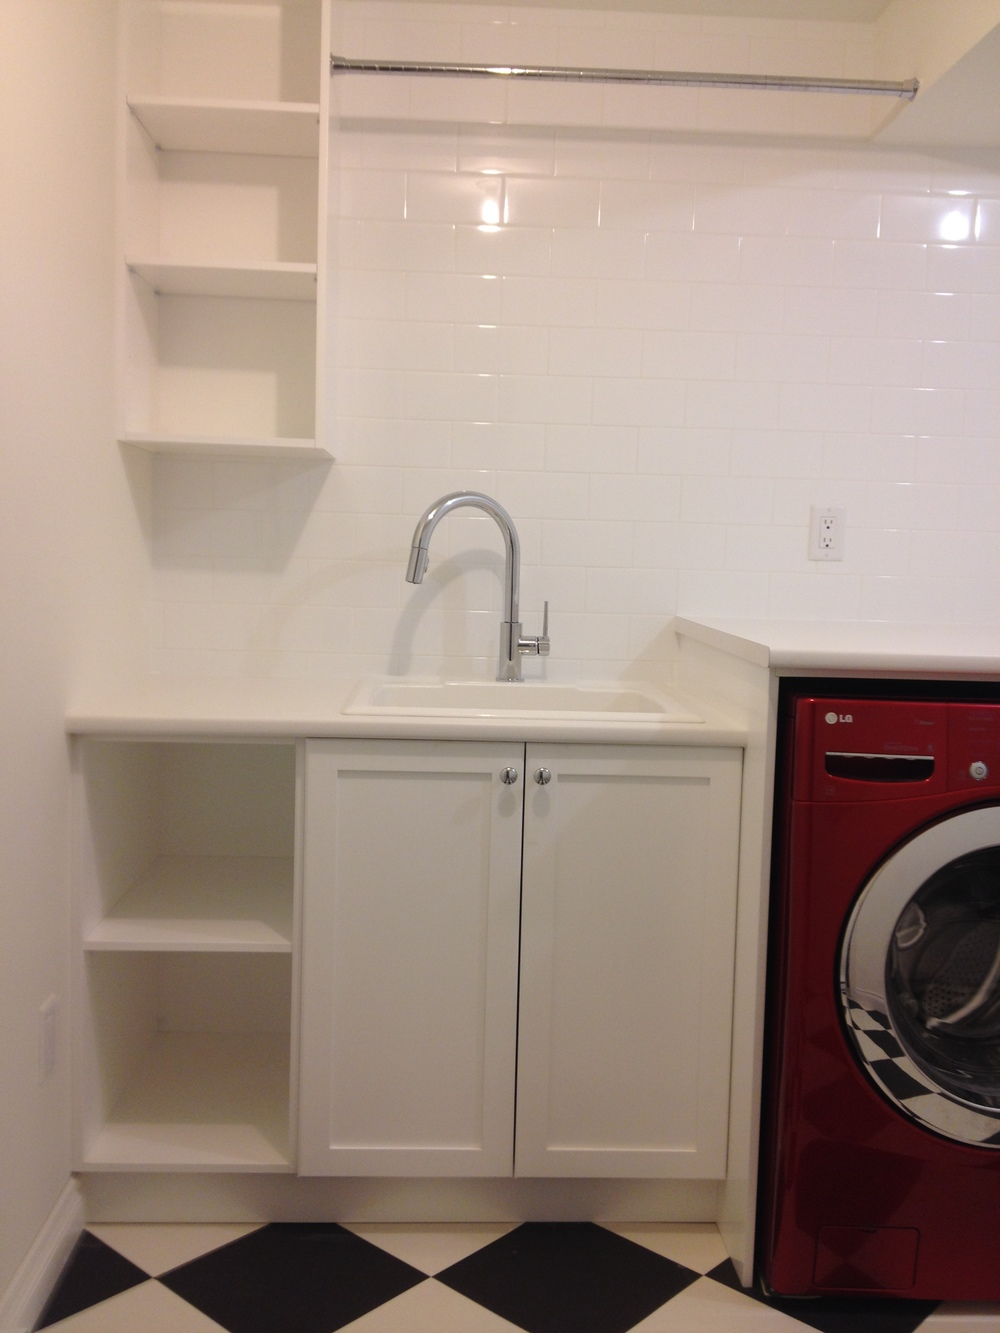 Laundry Room, Hanging Rod